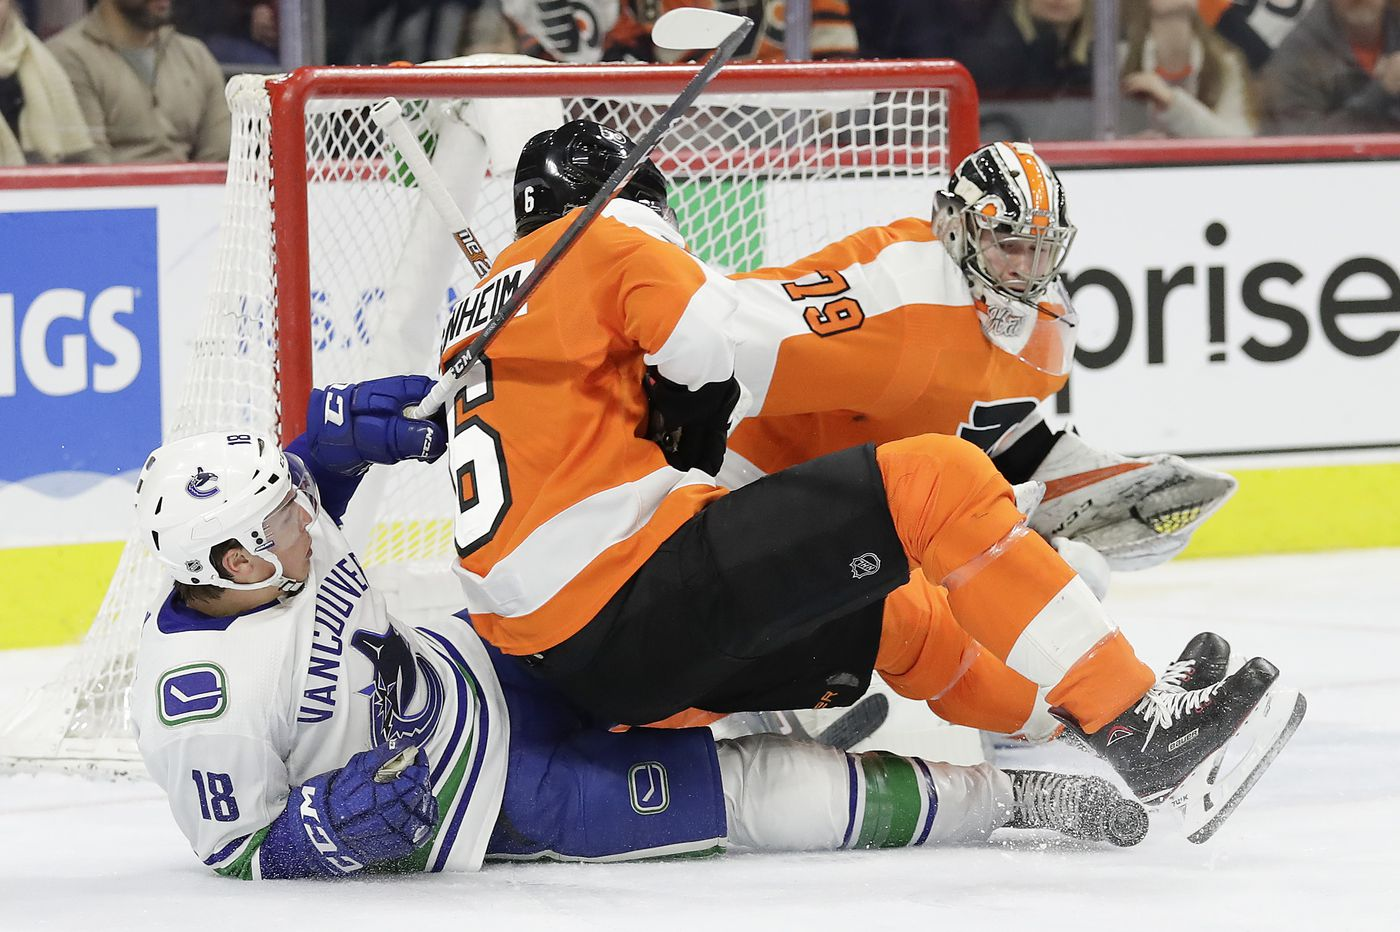 Carter Hart's 41 saves lead Flyers to eighth straight win, a 2-1 thriller over Canucks